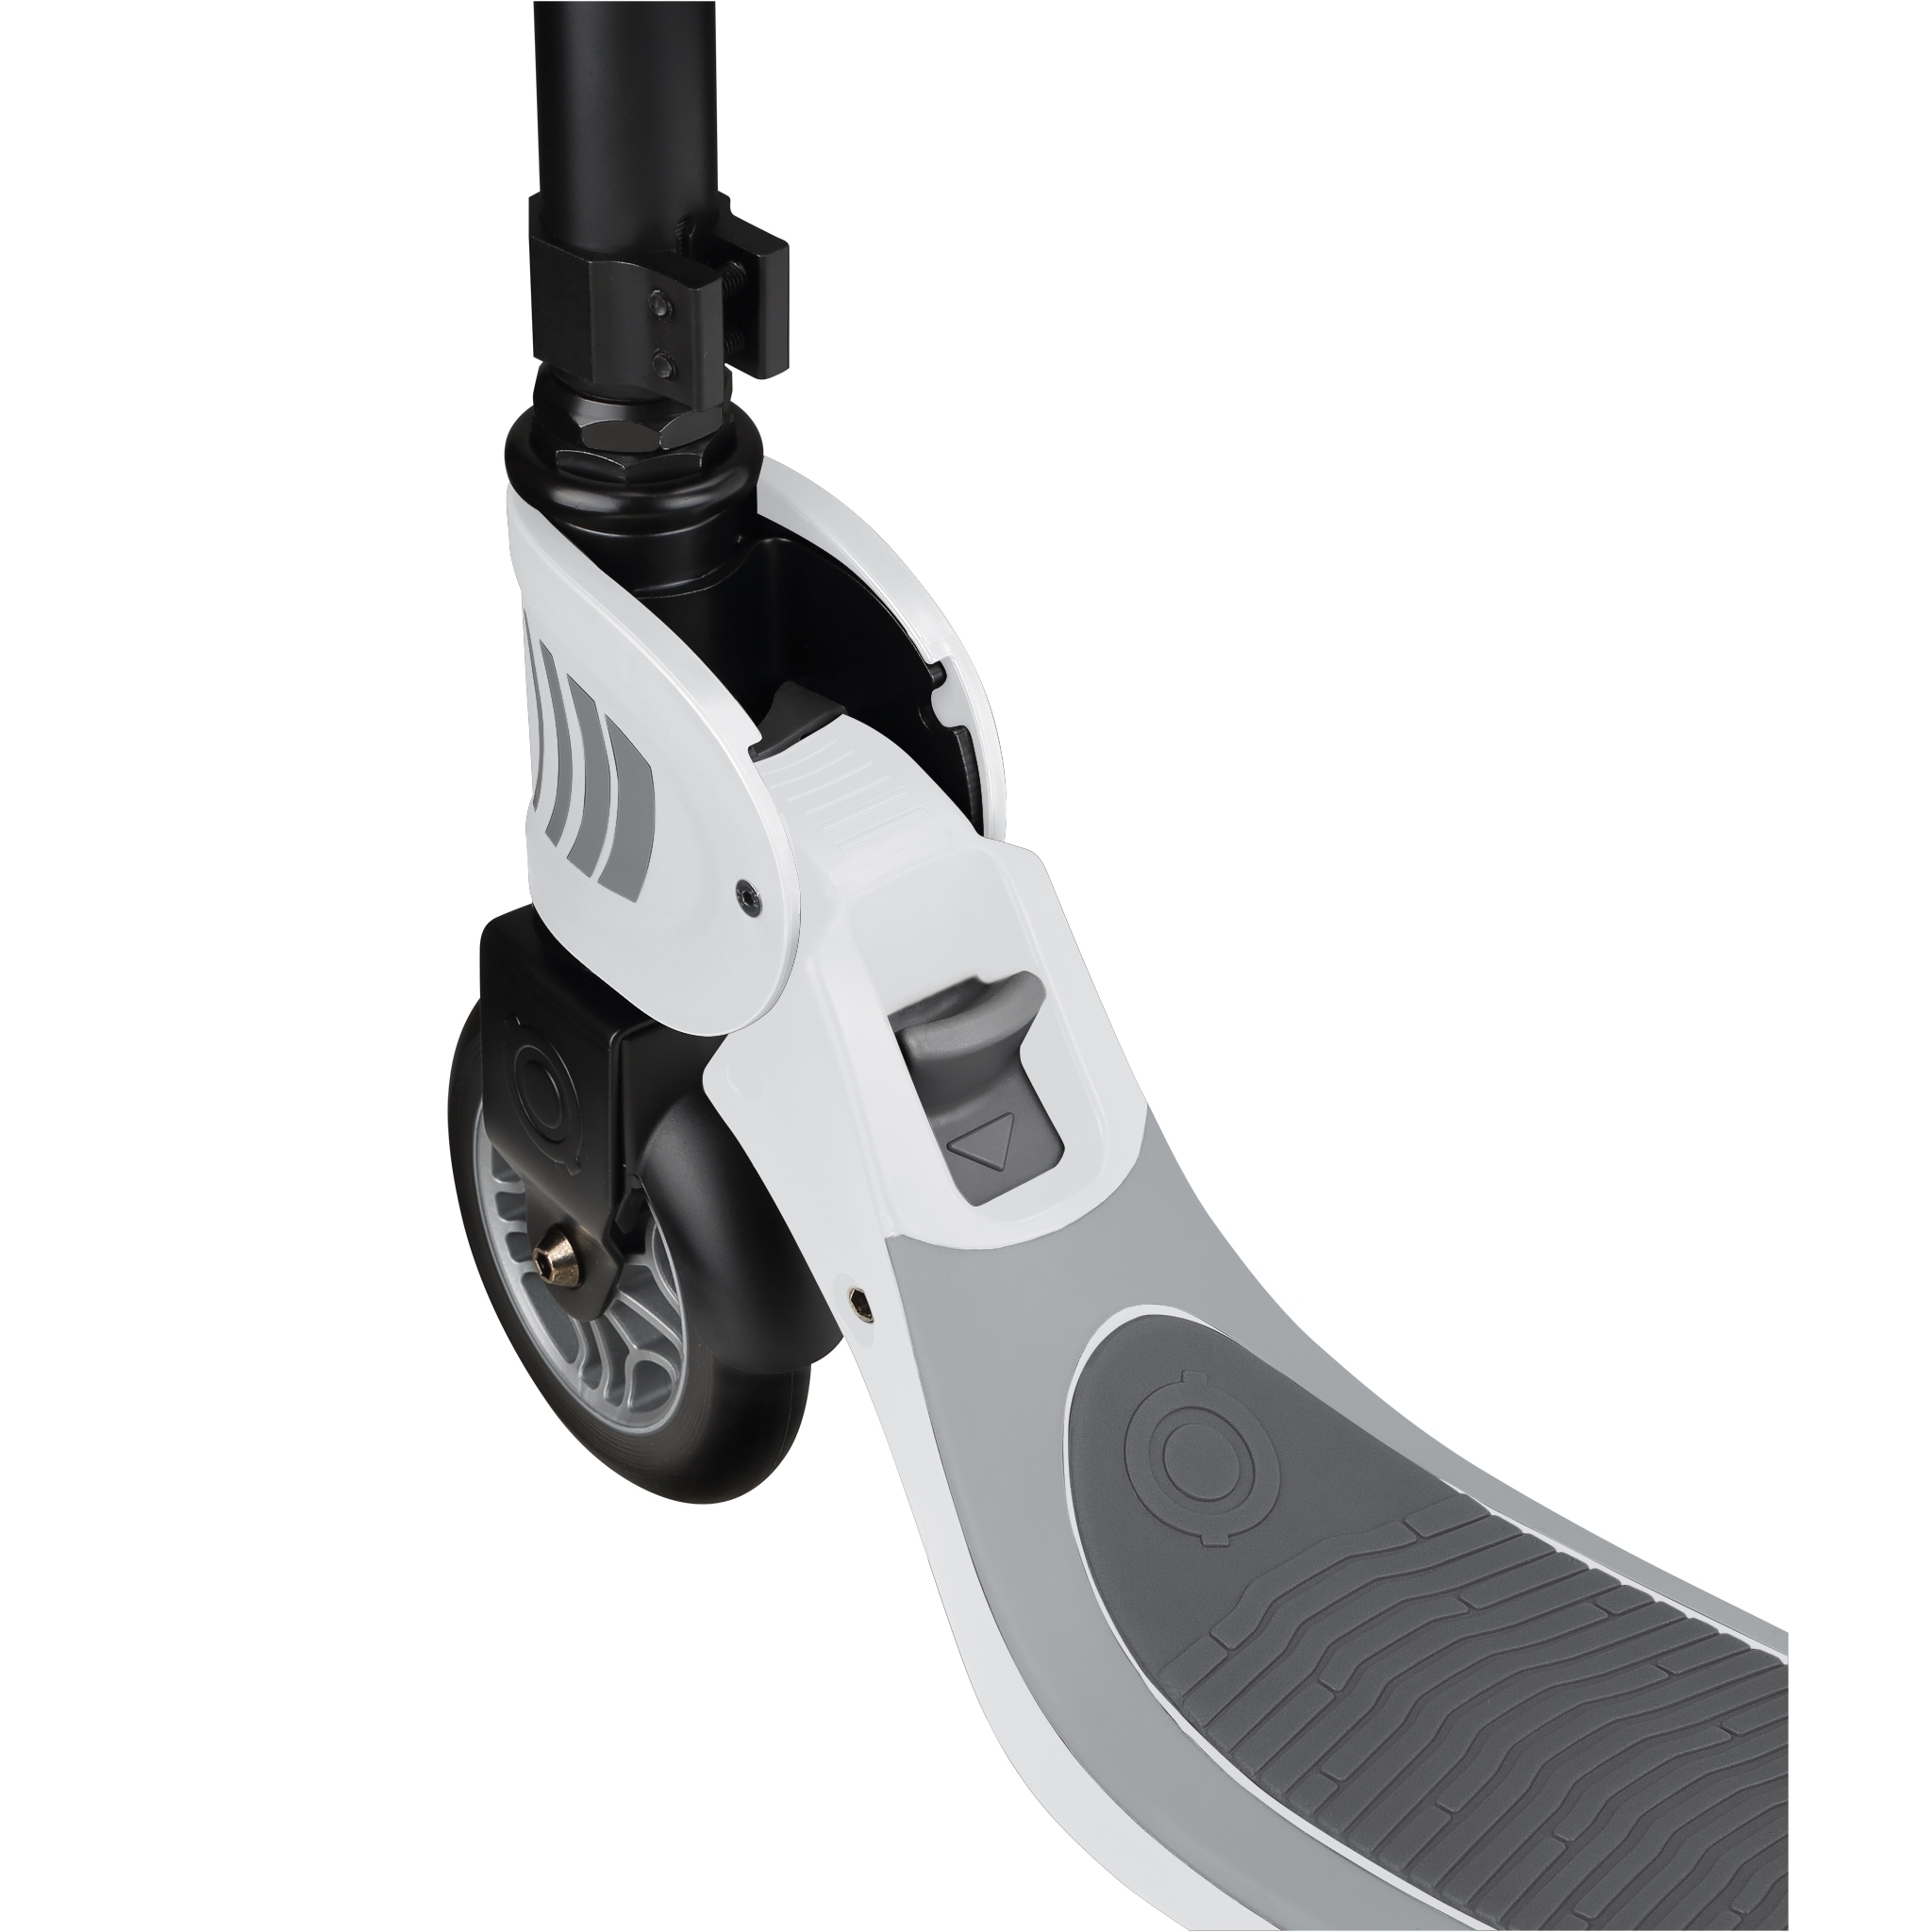 FLOW-FOLDABLE-125-2-wheel-folding-scooter-with-push-button-white 4